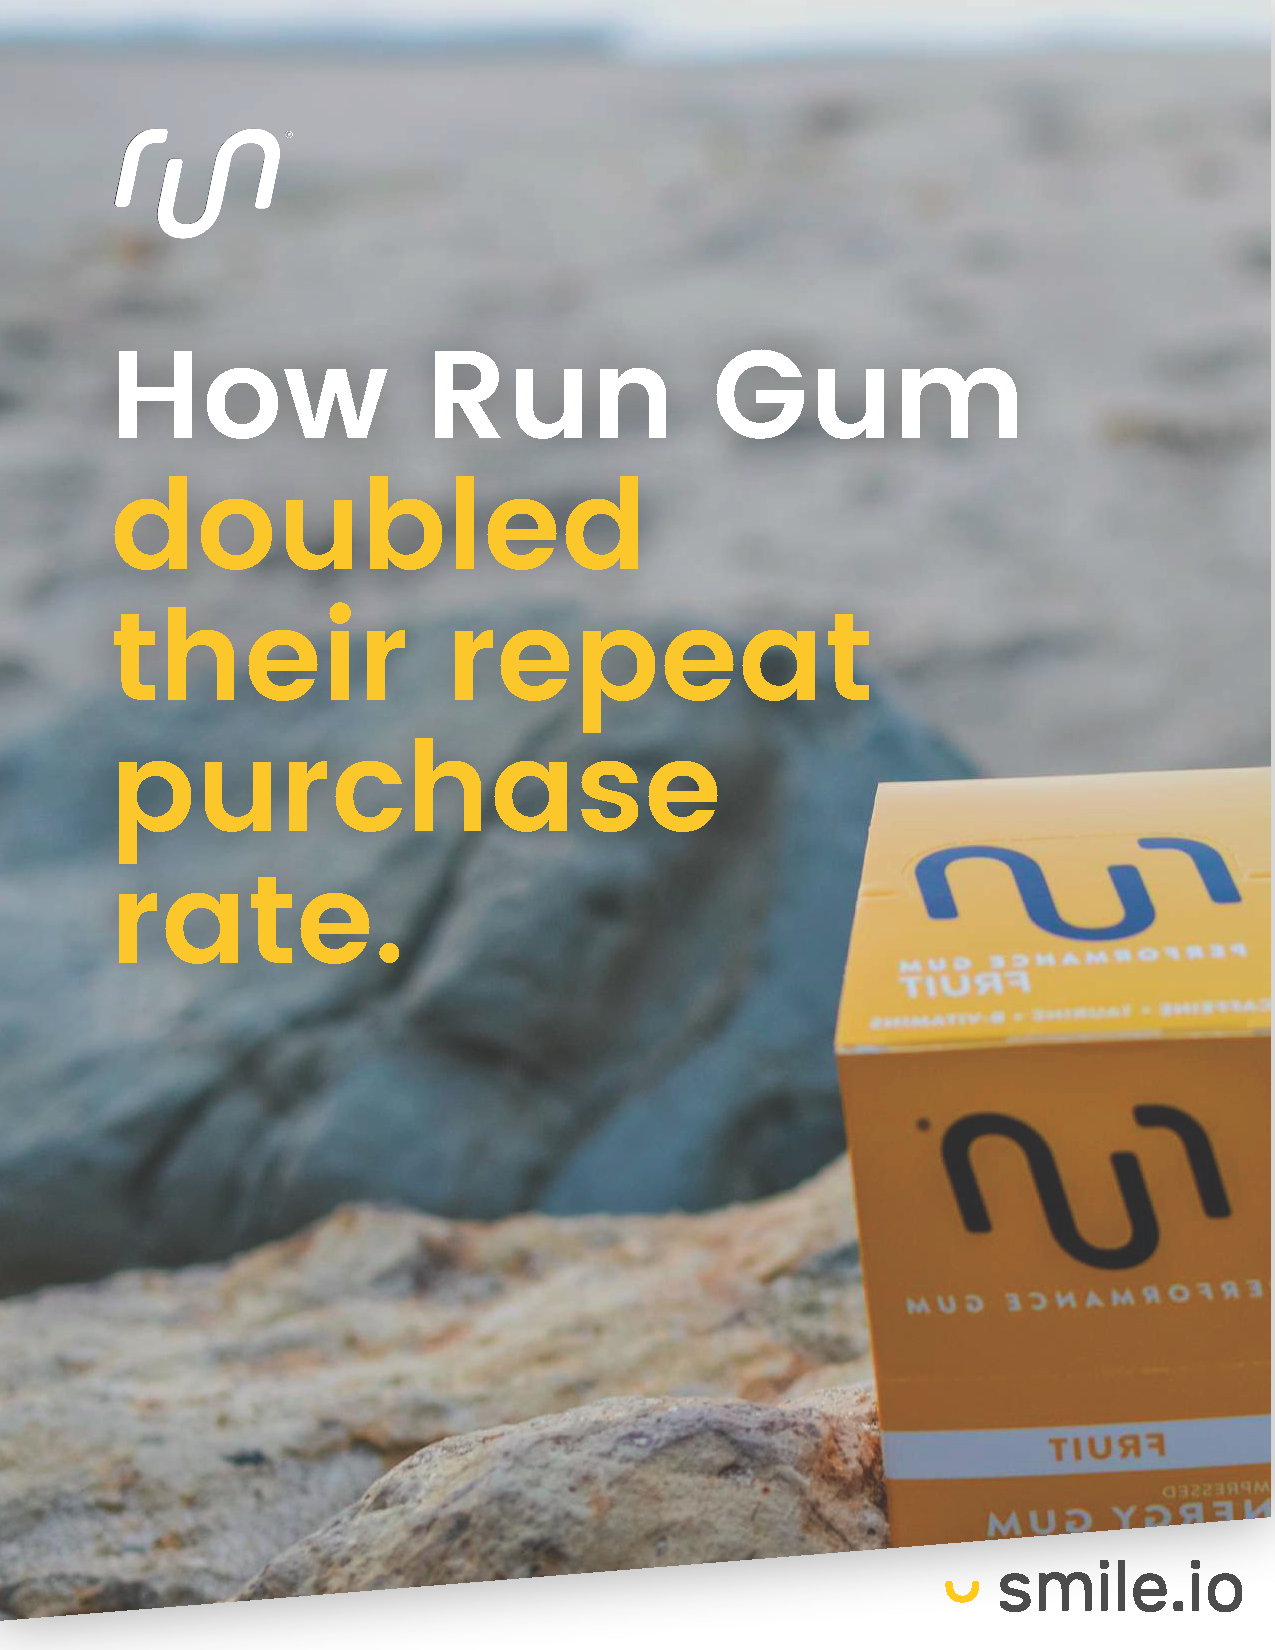 Shopify Case Study: Run Gum